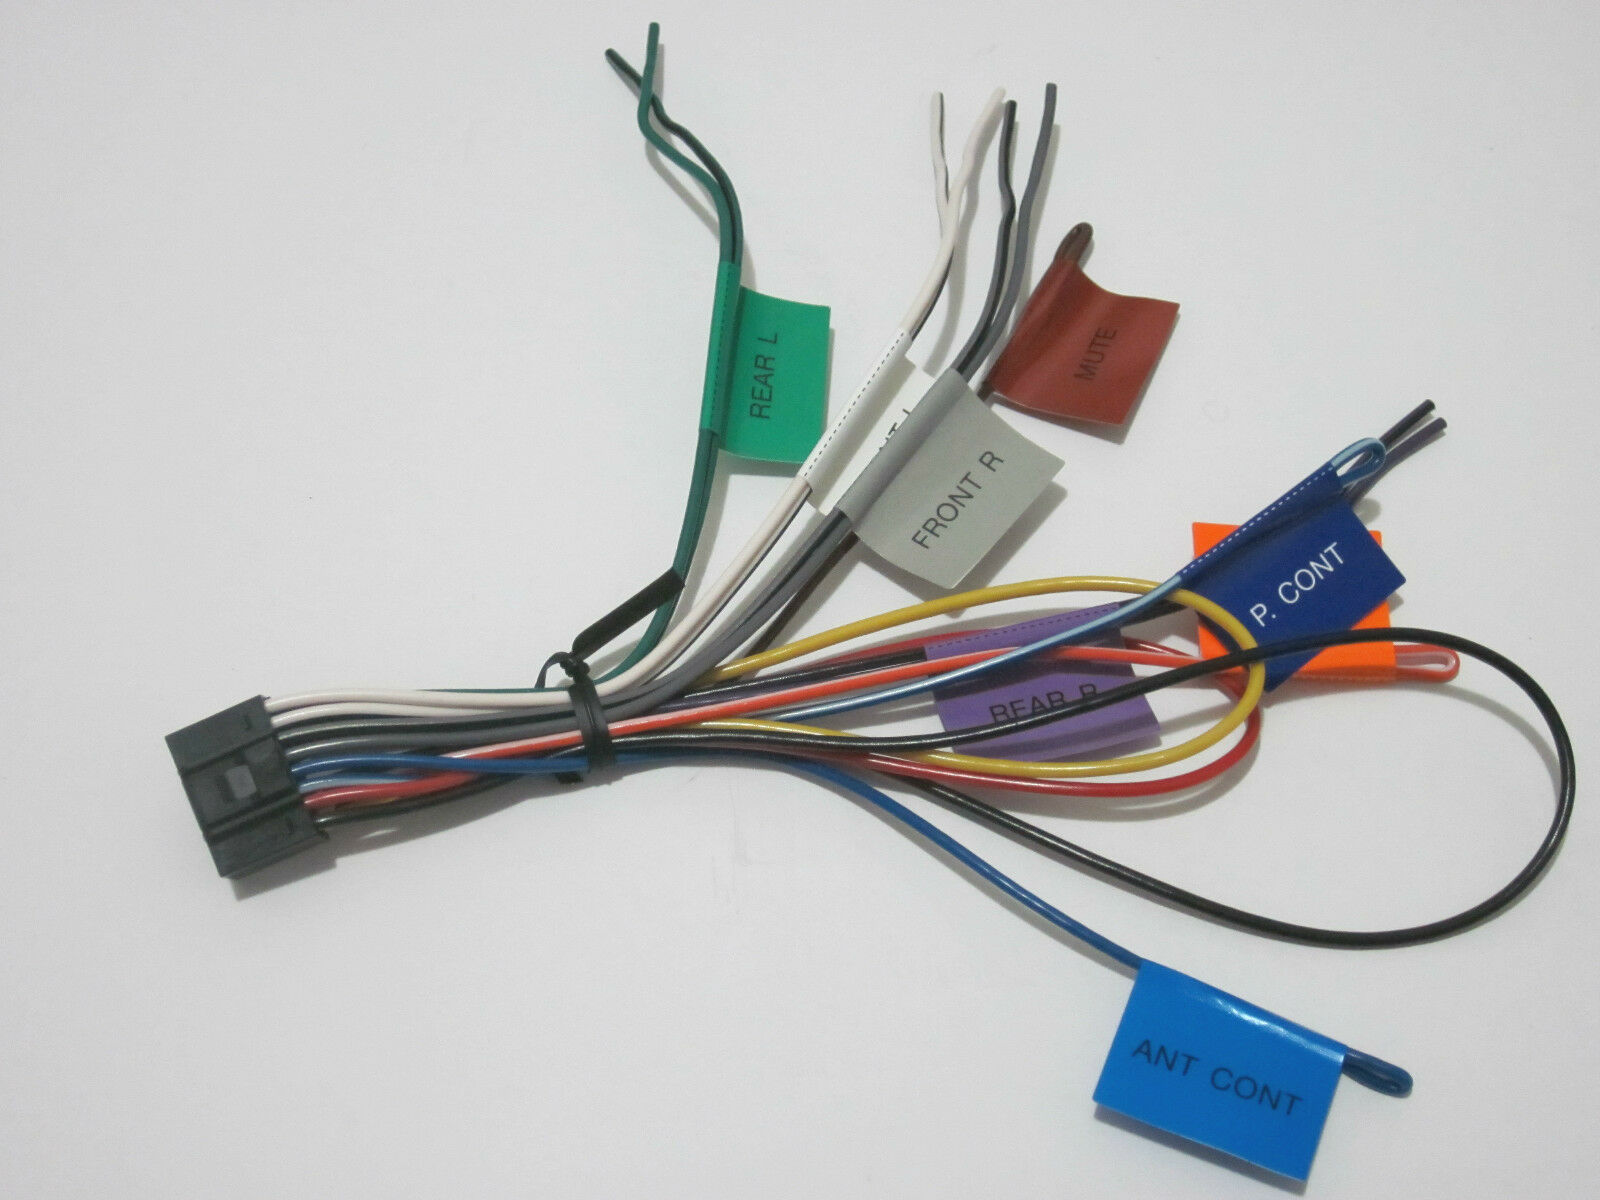 hight resolution of kenwood kdcx492 wiring kdc x492 excelon radio cd wiring diagram kenwood kdc x492 cd player in